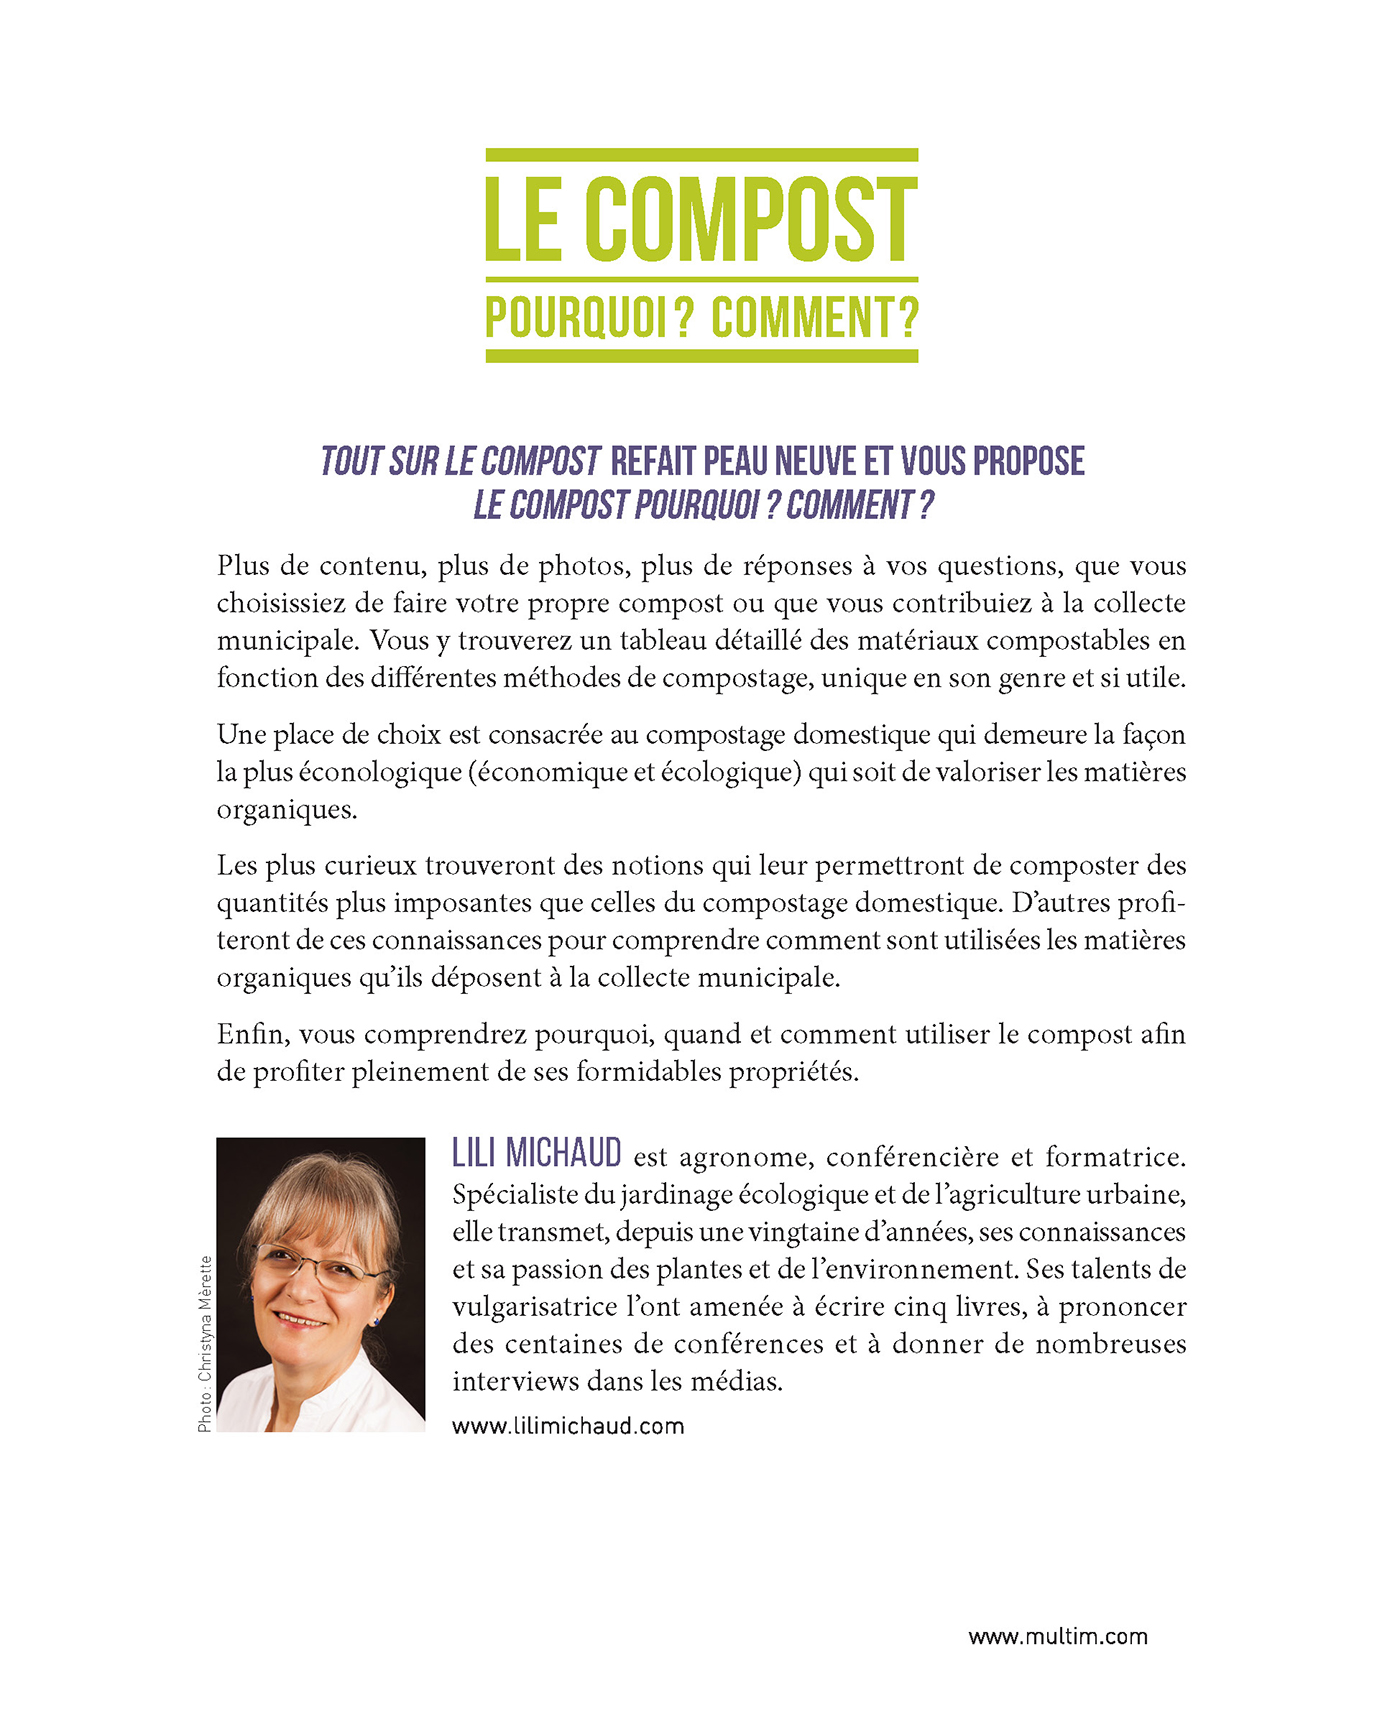 Le compost : Pourquoi? Comment? - Lili Michaud revers